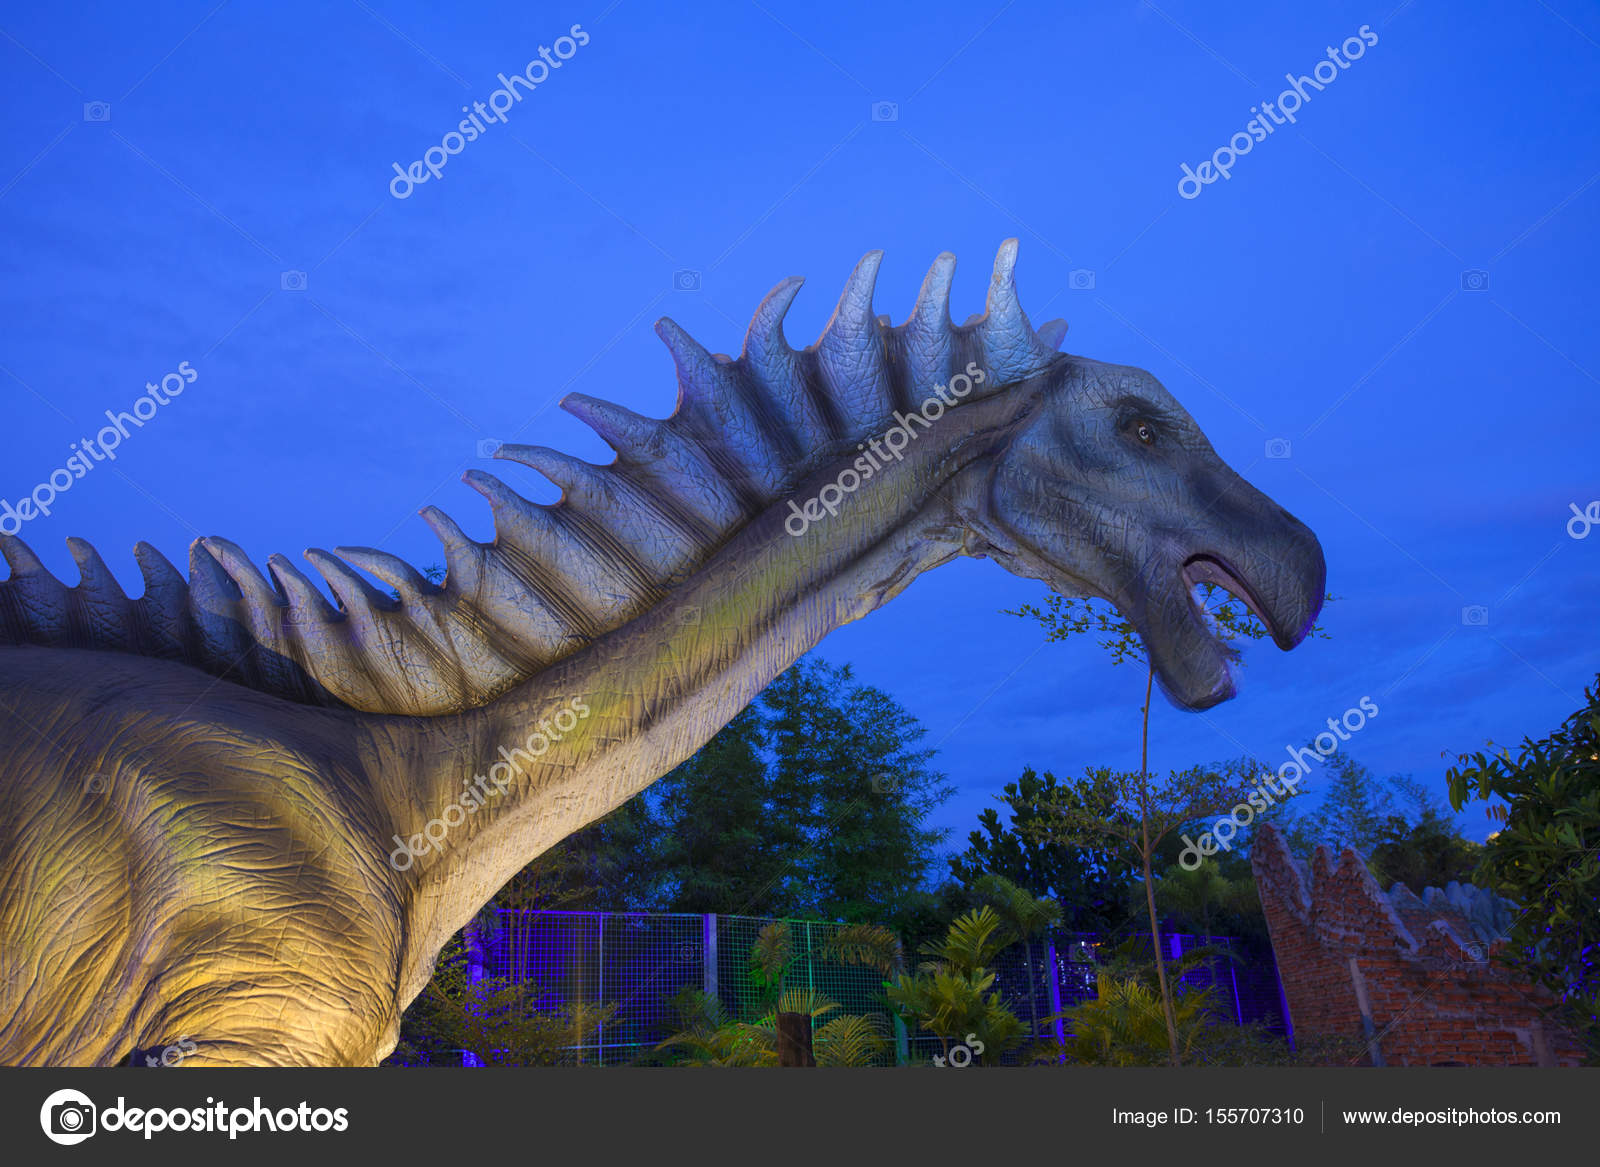 Dinosaur Park in Thailand – Stock Editorial Photo © jee1999 #155707310